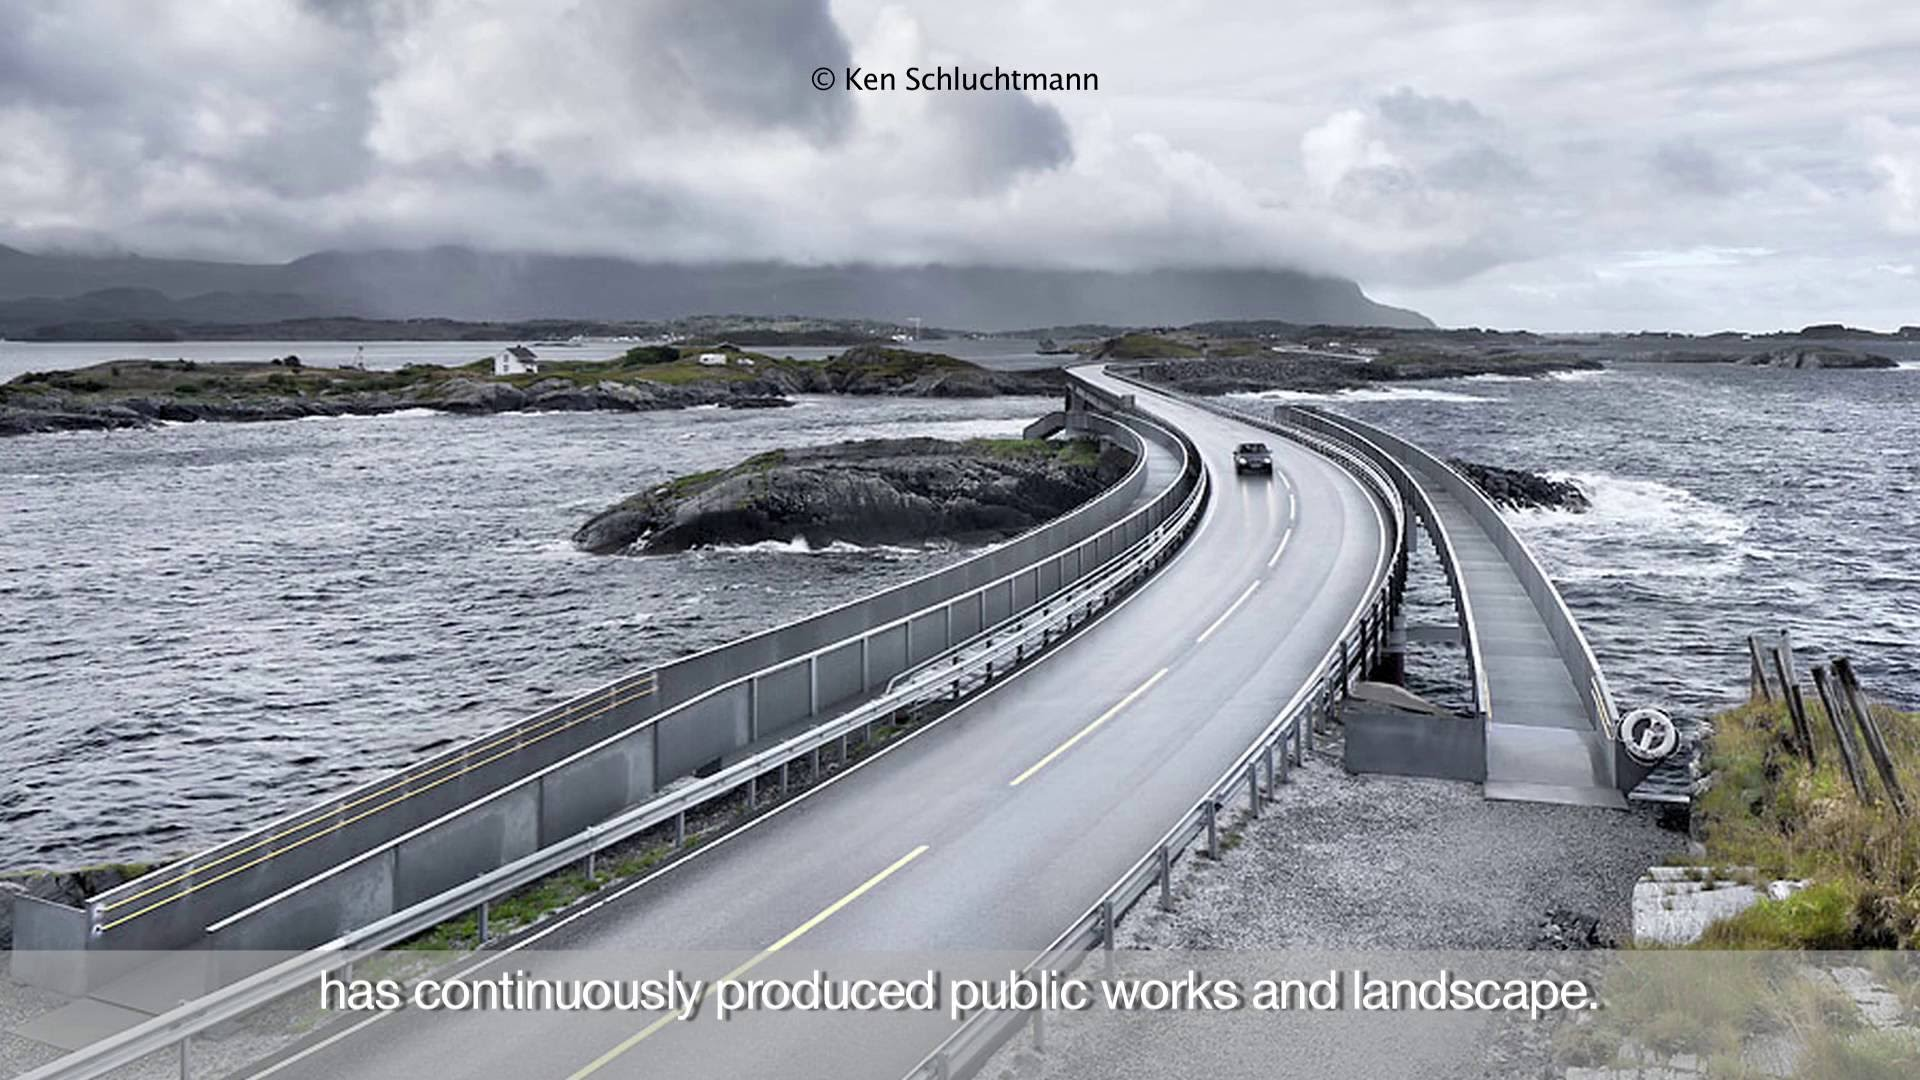 NORWAY ARCHITECTURE, INFRASTRUCTURE, LANDSCAPE. WITH PHOTOGRAPHS BY KEN SCHLUCHTMANN | Il Trailer